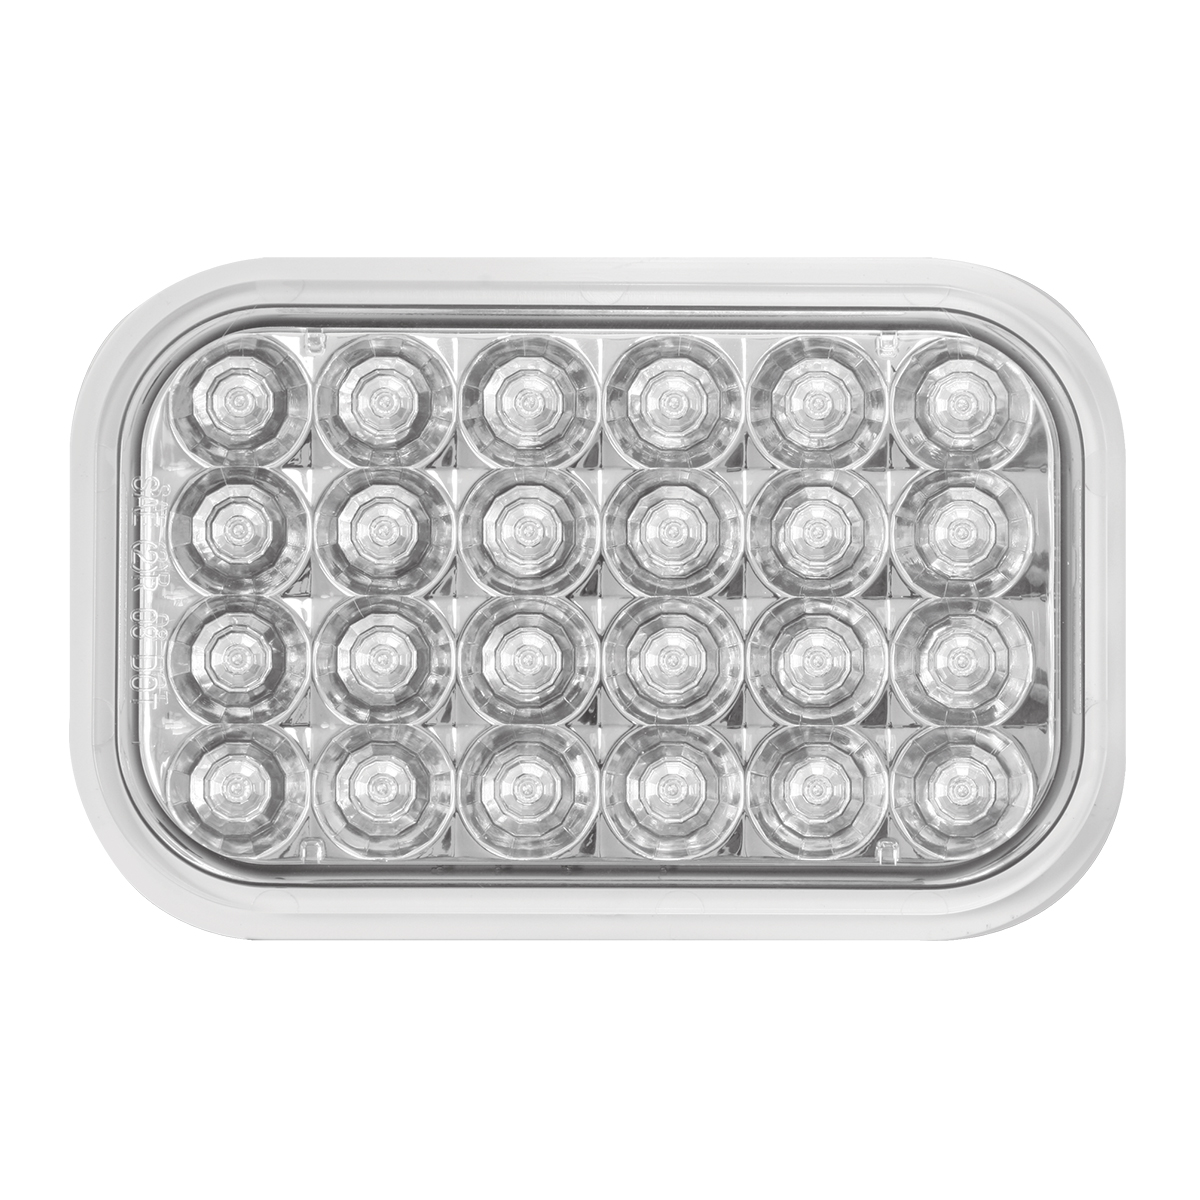 77184 Rectangular Pearl LED Light in White/Clear